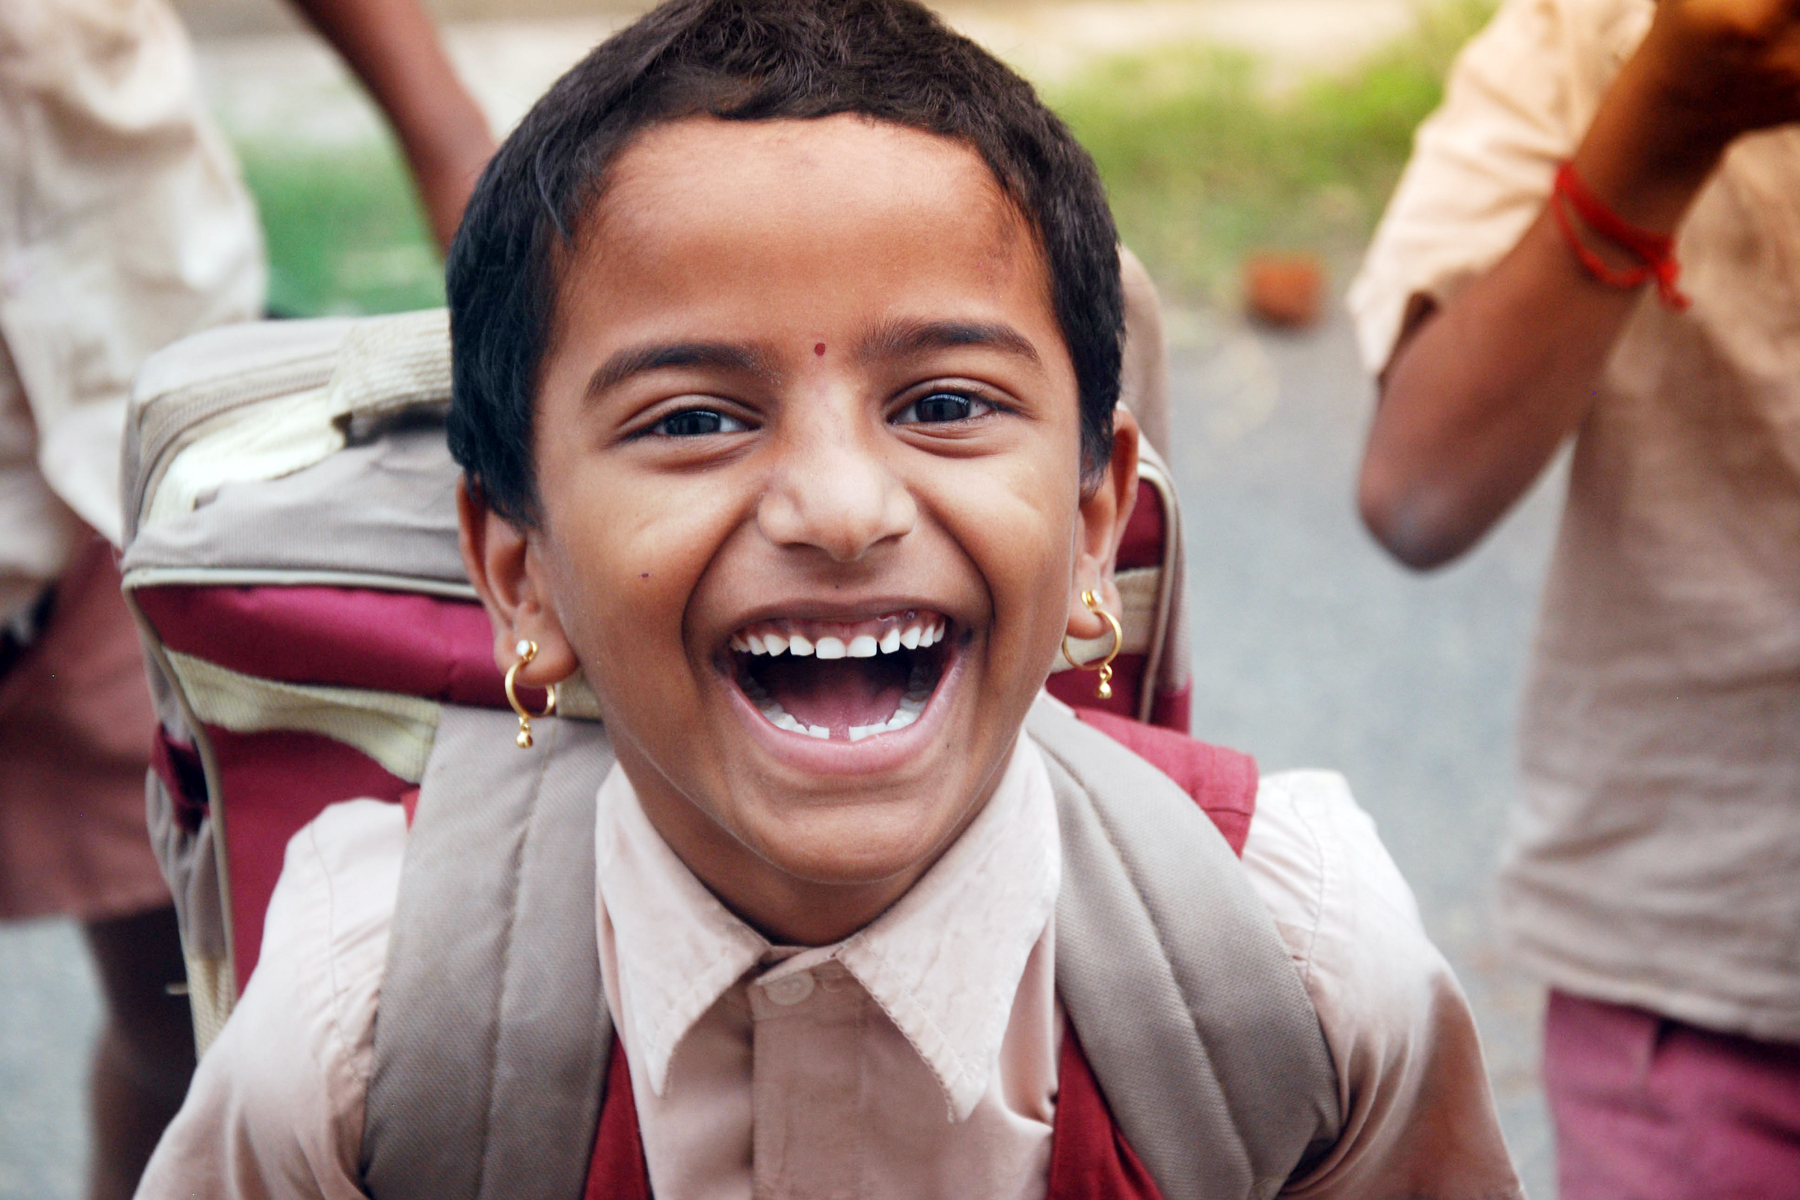 Laughing Indian child.jpeg